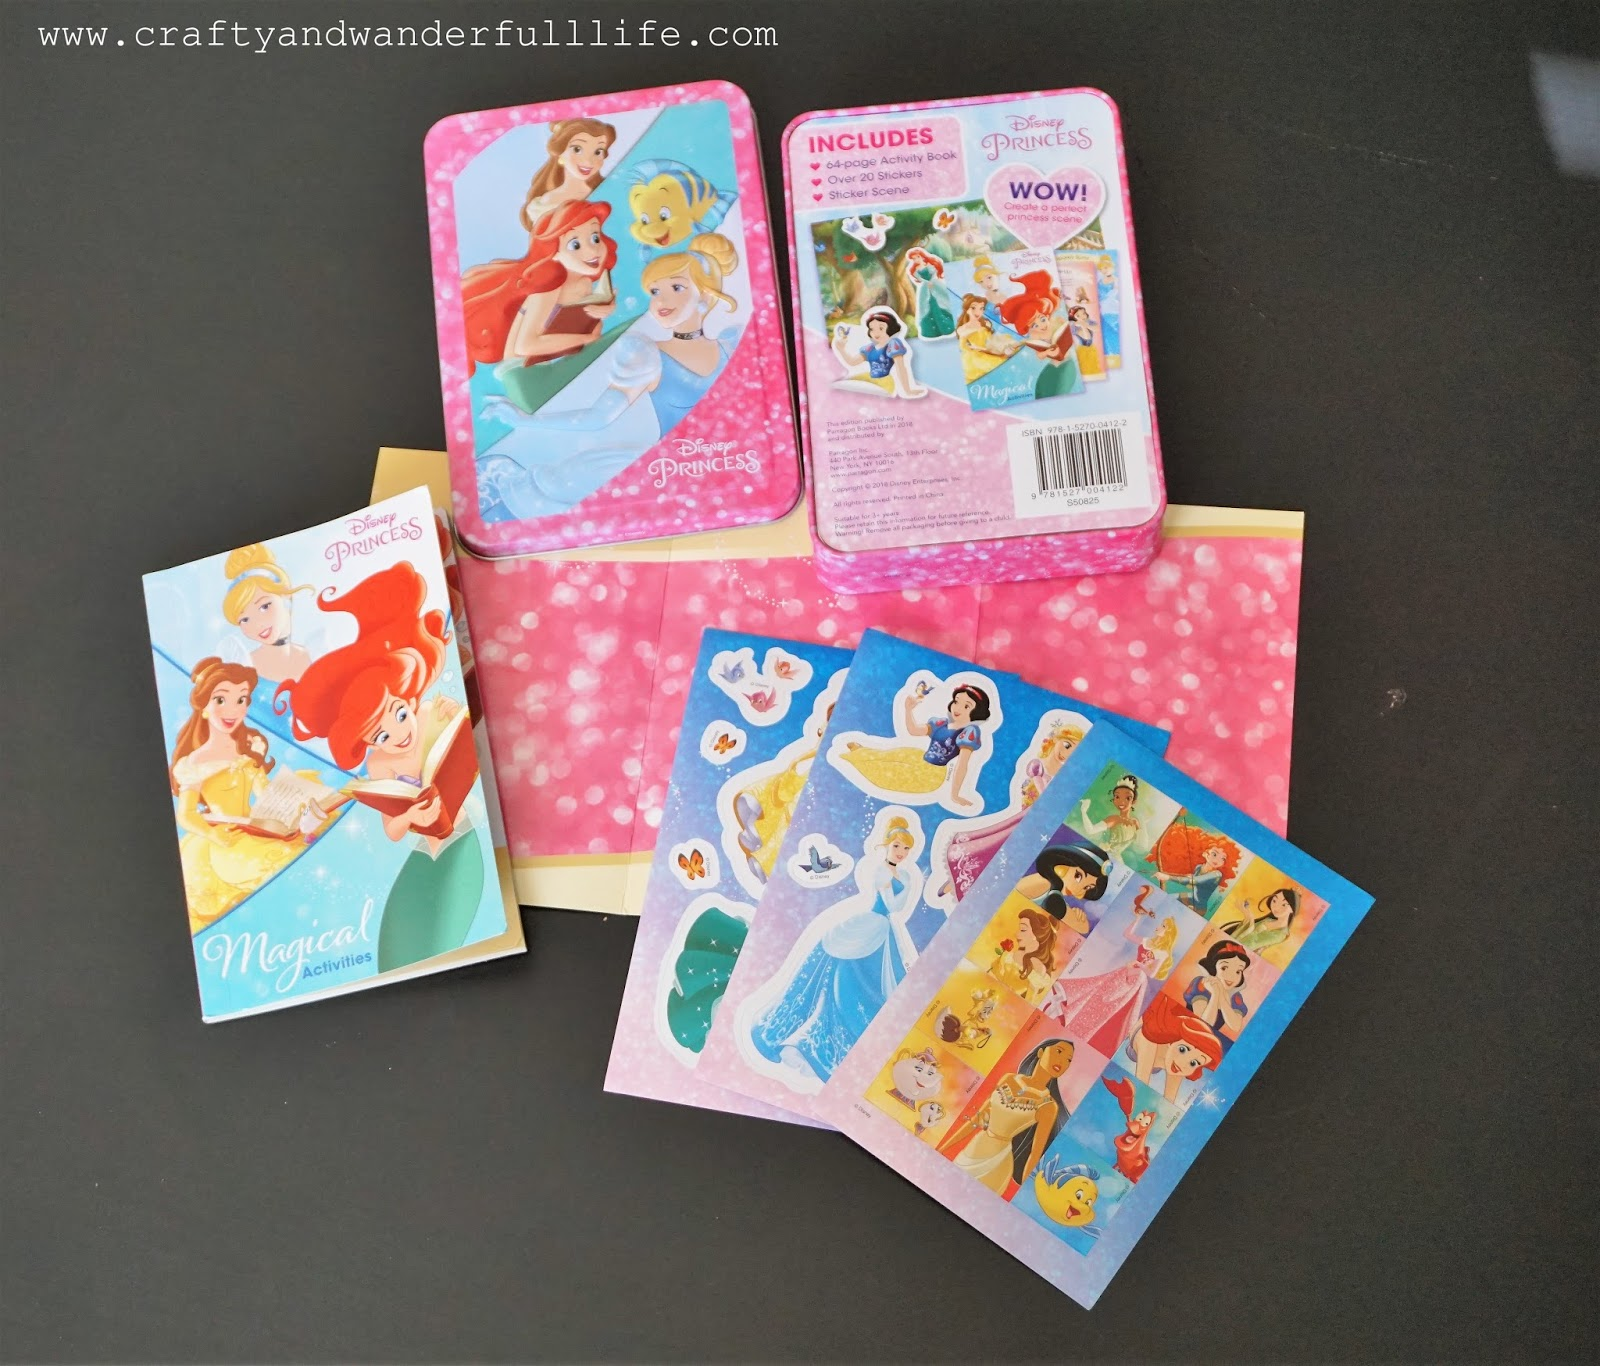 Crafty And Wanderfull Life Parragon January 2018 Book Buddies Box Sticker Activity Books My Pretty Pink While The Tin Is Small Its Packed With A Lot Of Fun Inside Disney Princess Mini Collectors Youll Find An Stickers